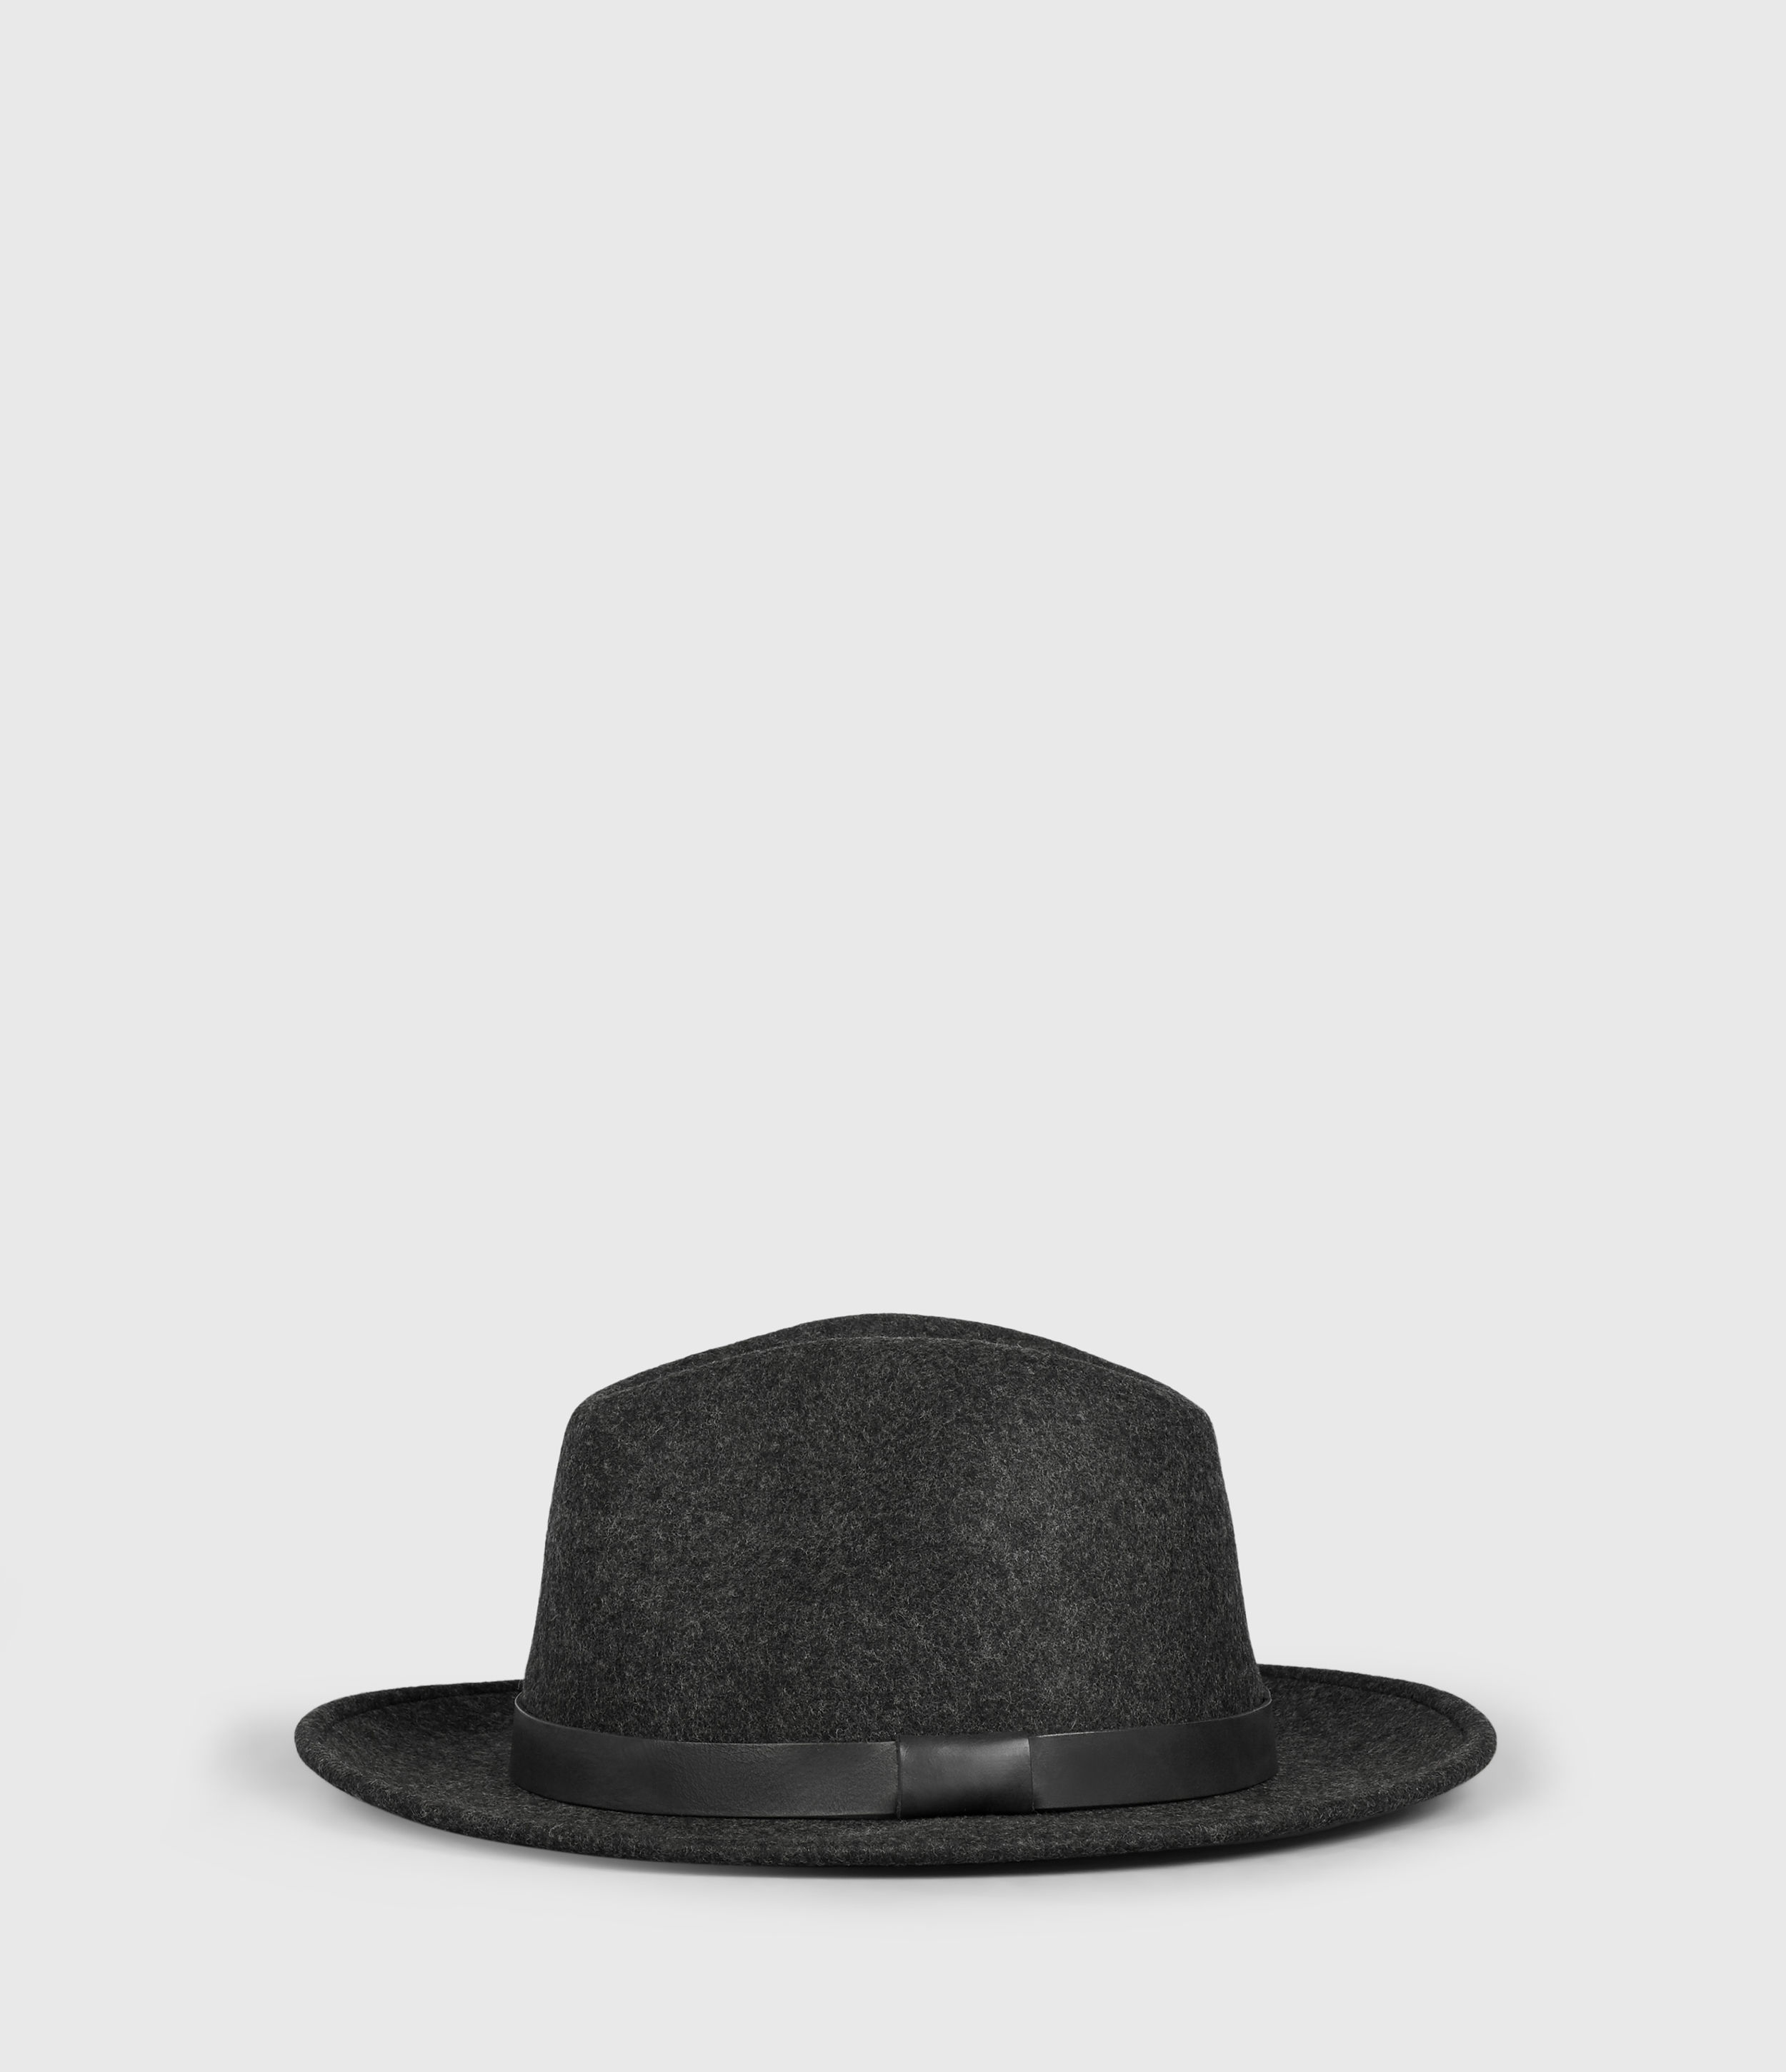 AllSaints Men's Classic Leather Bronson Fully Lined Fedora Hat, Black, Size: S/M